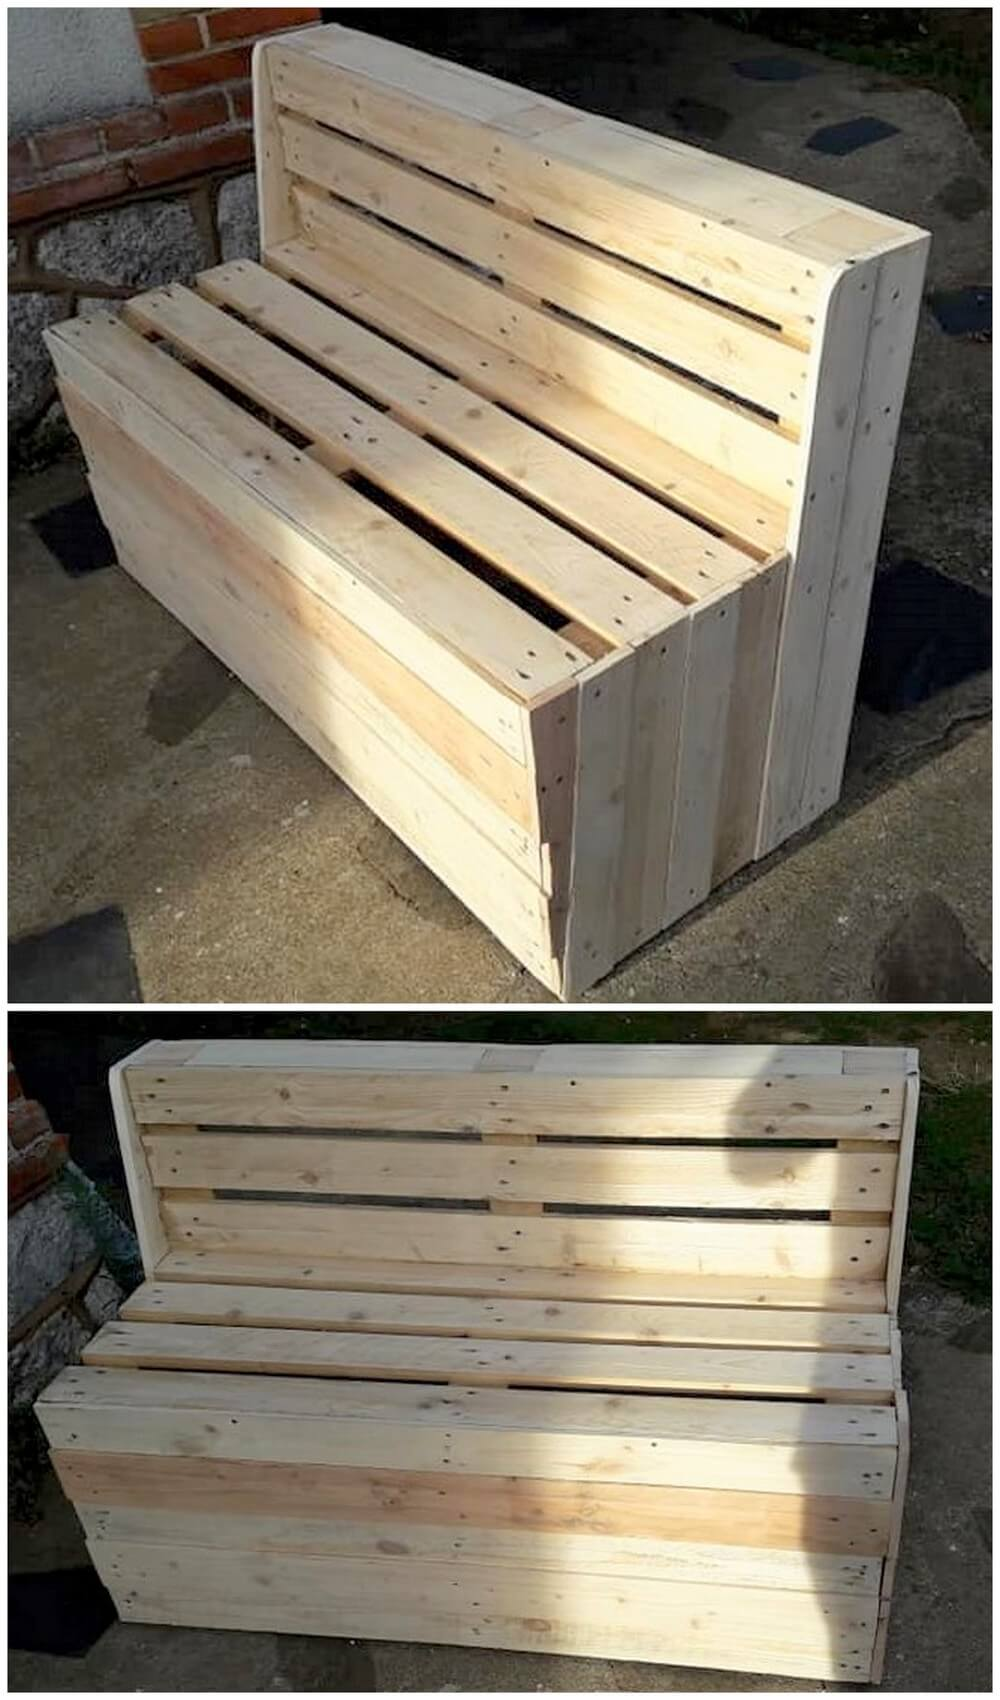 5 Wood Pallet Project Ideas To Spruce Up Your Home